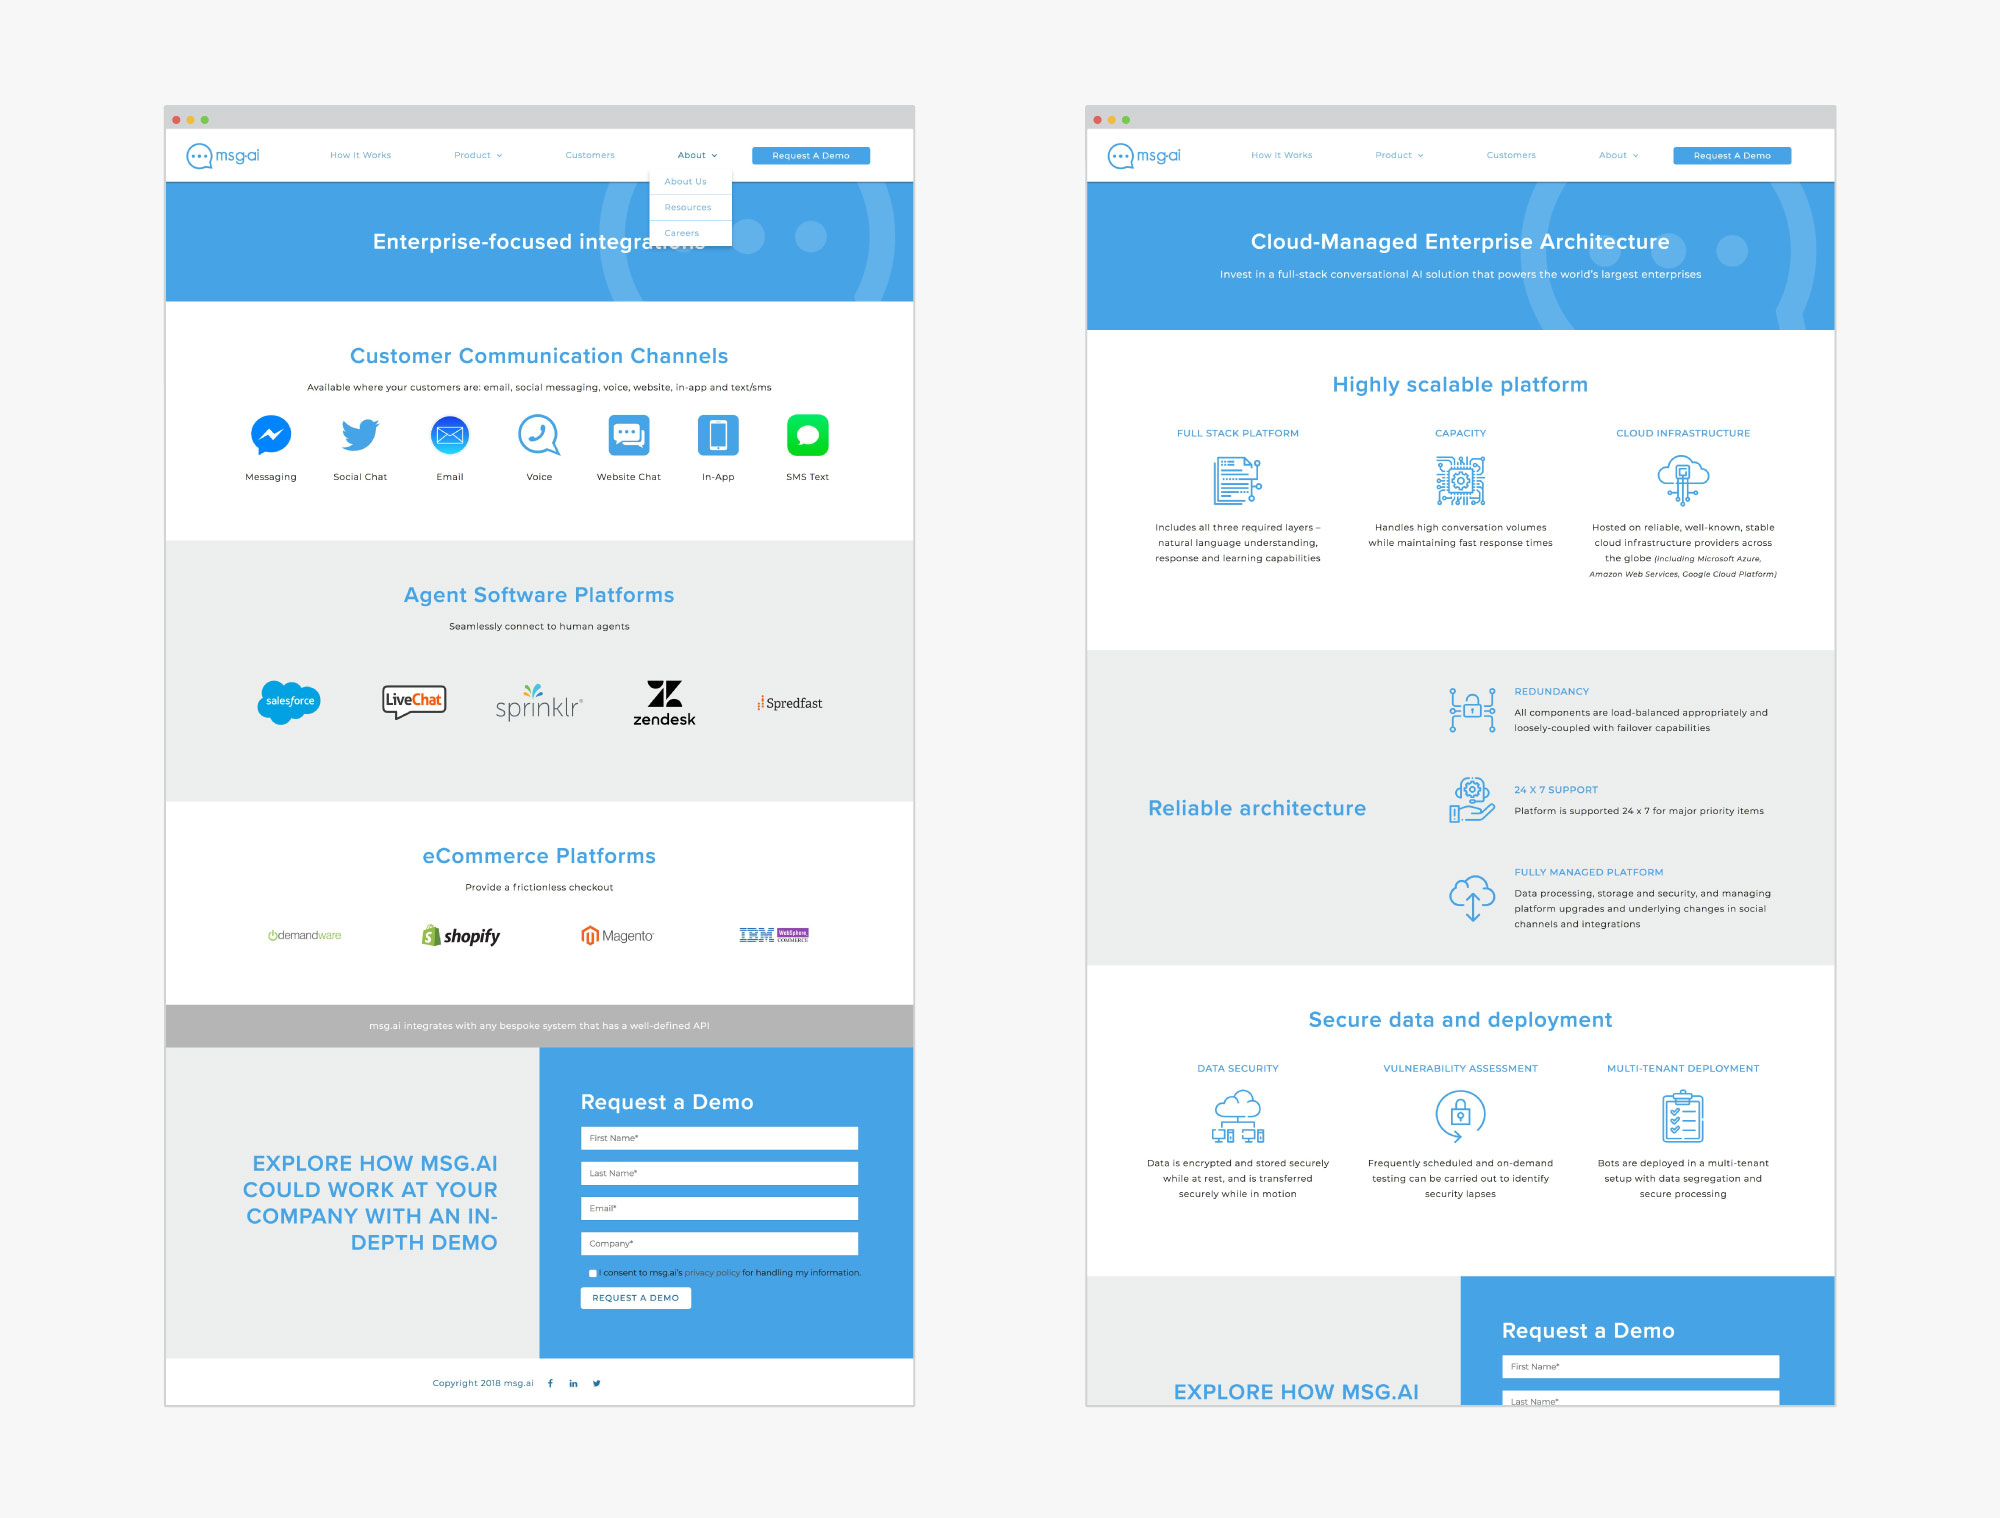 giant is msg ai website samples pages